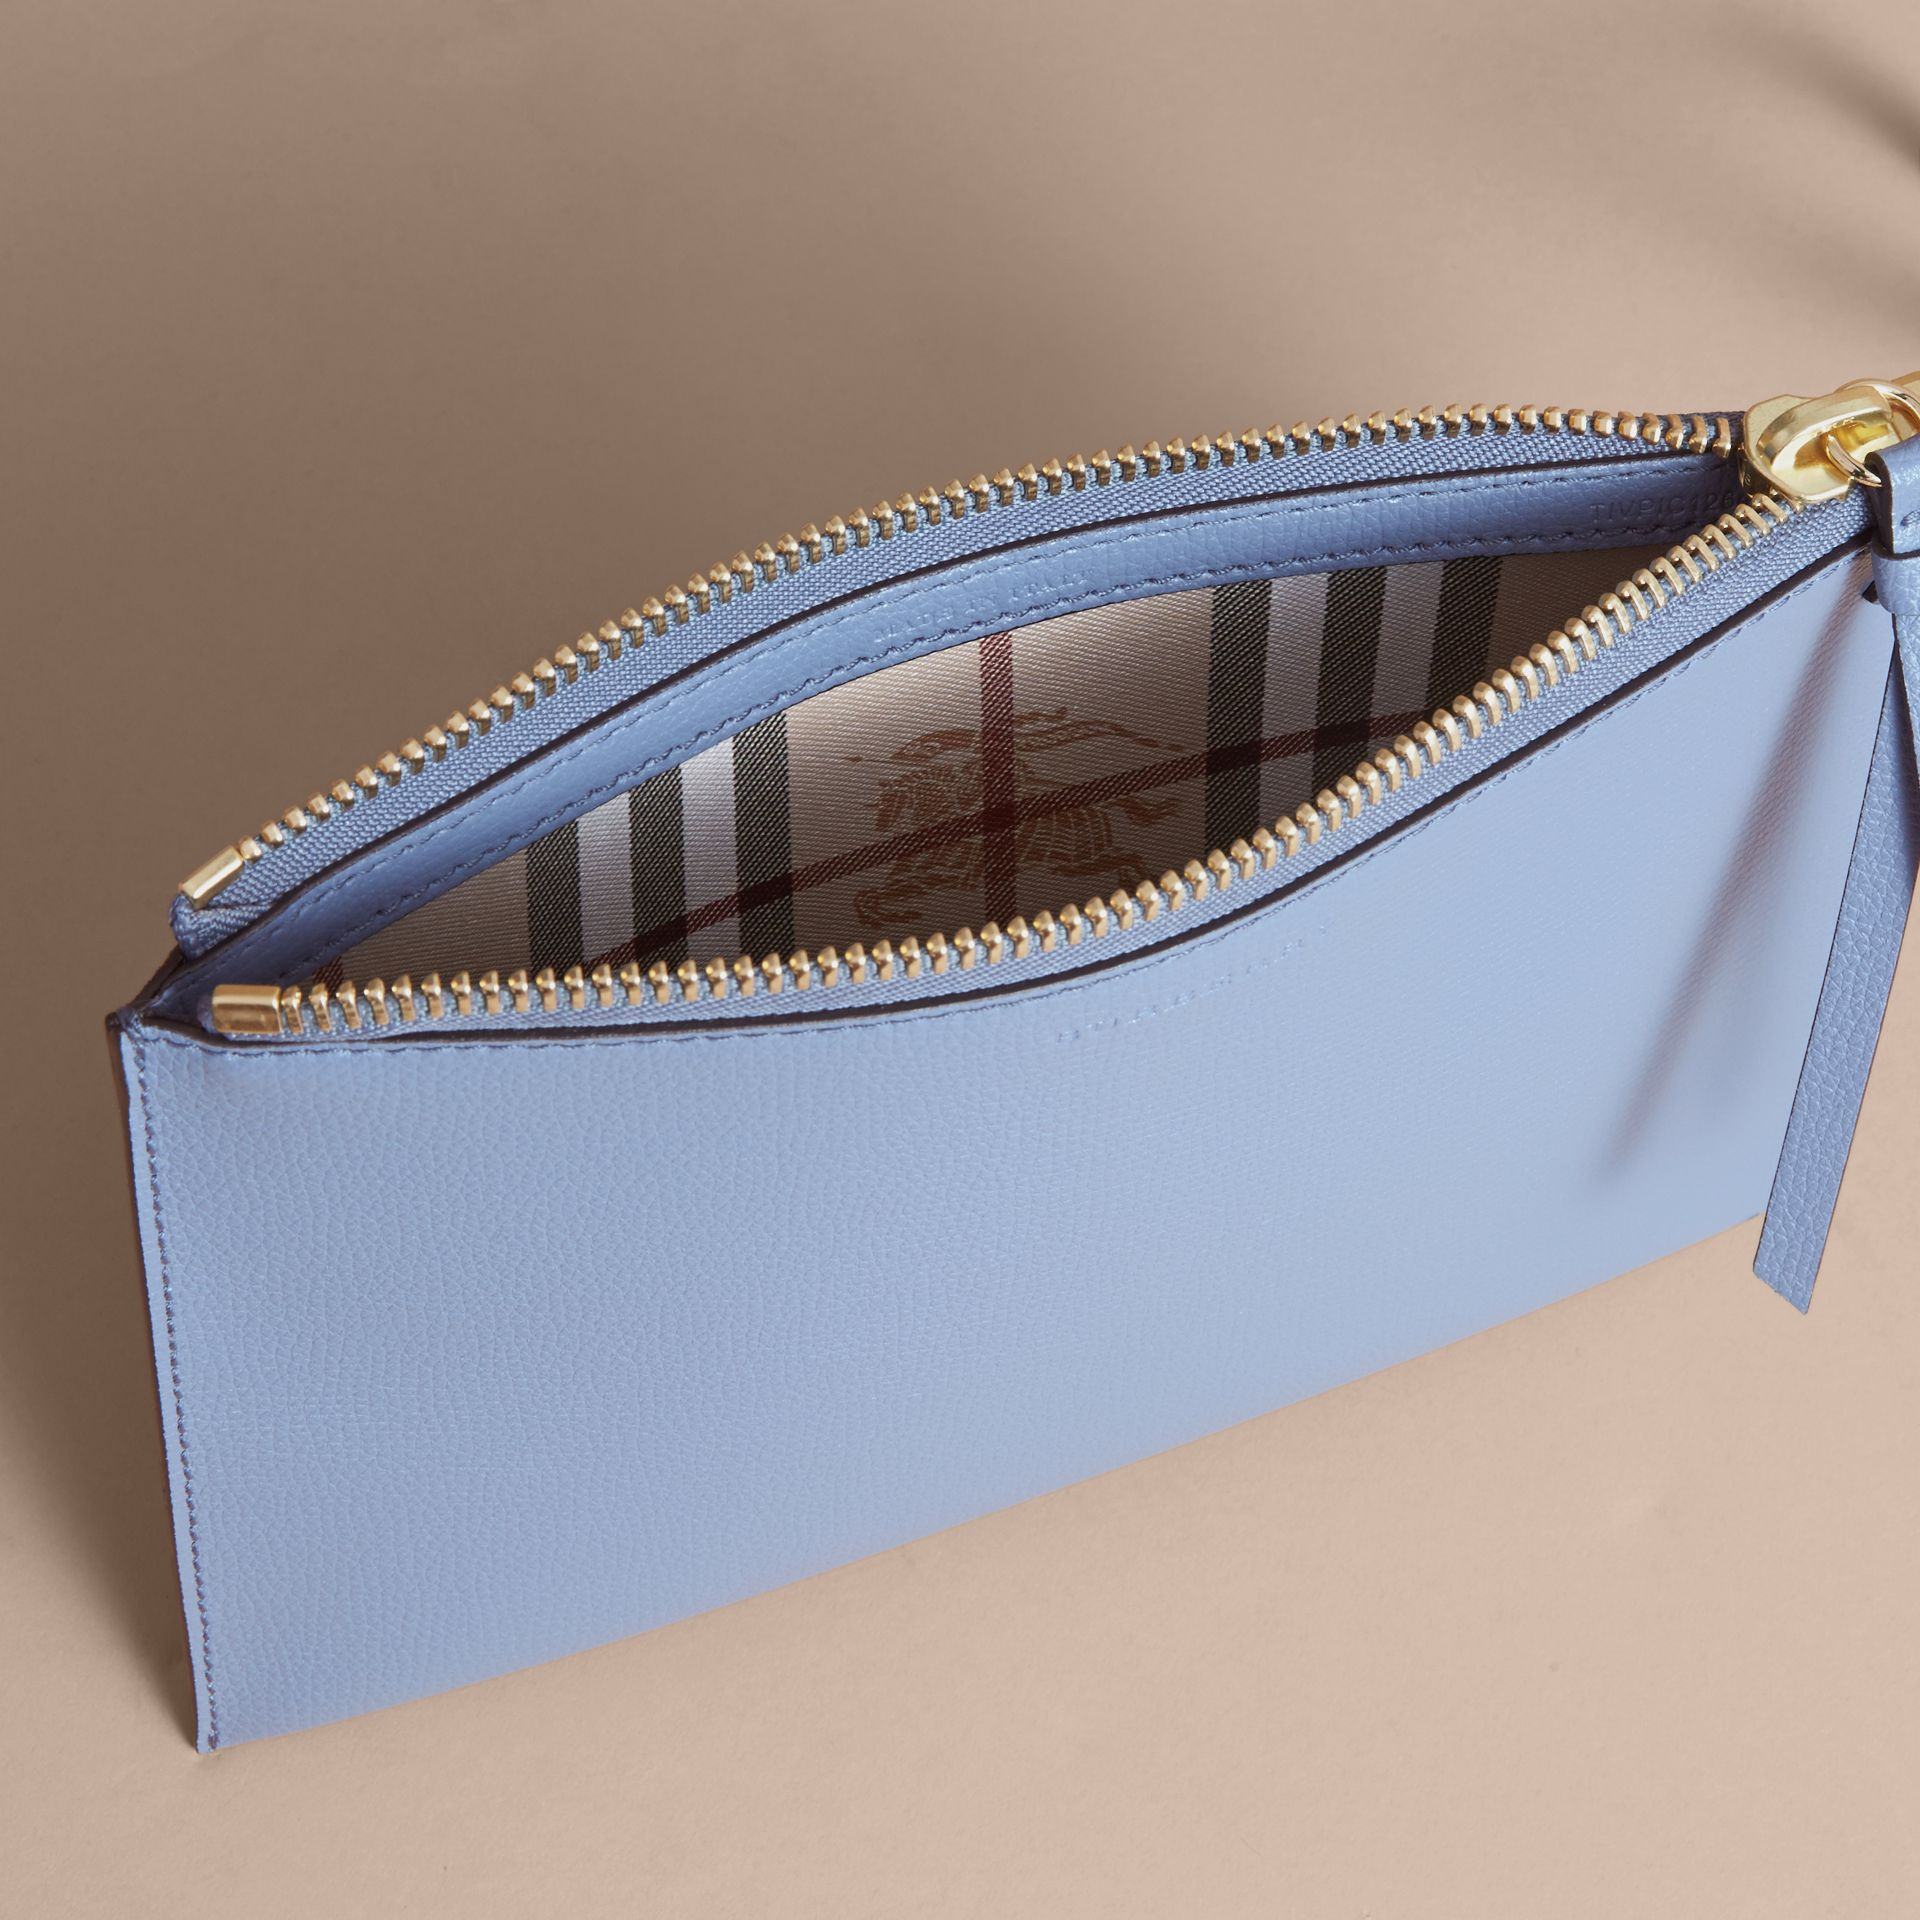 Haymarket Check and Leather Pouch in Slate Blue - Women | Burberry - gallery image 5